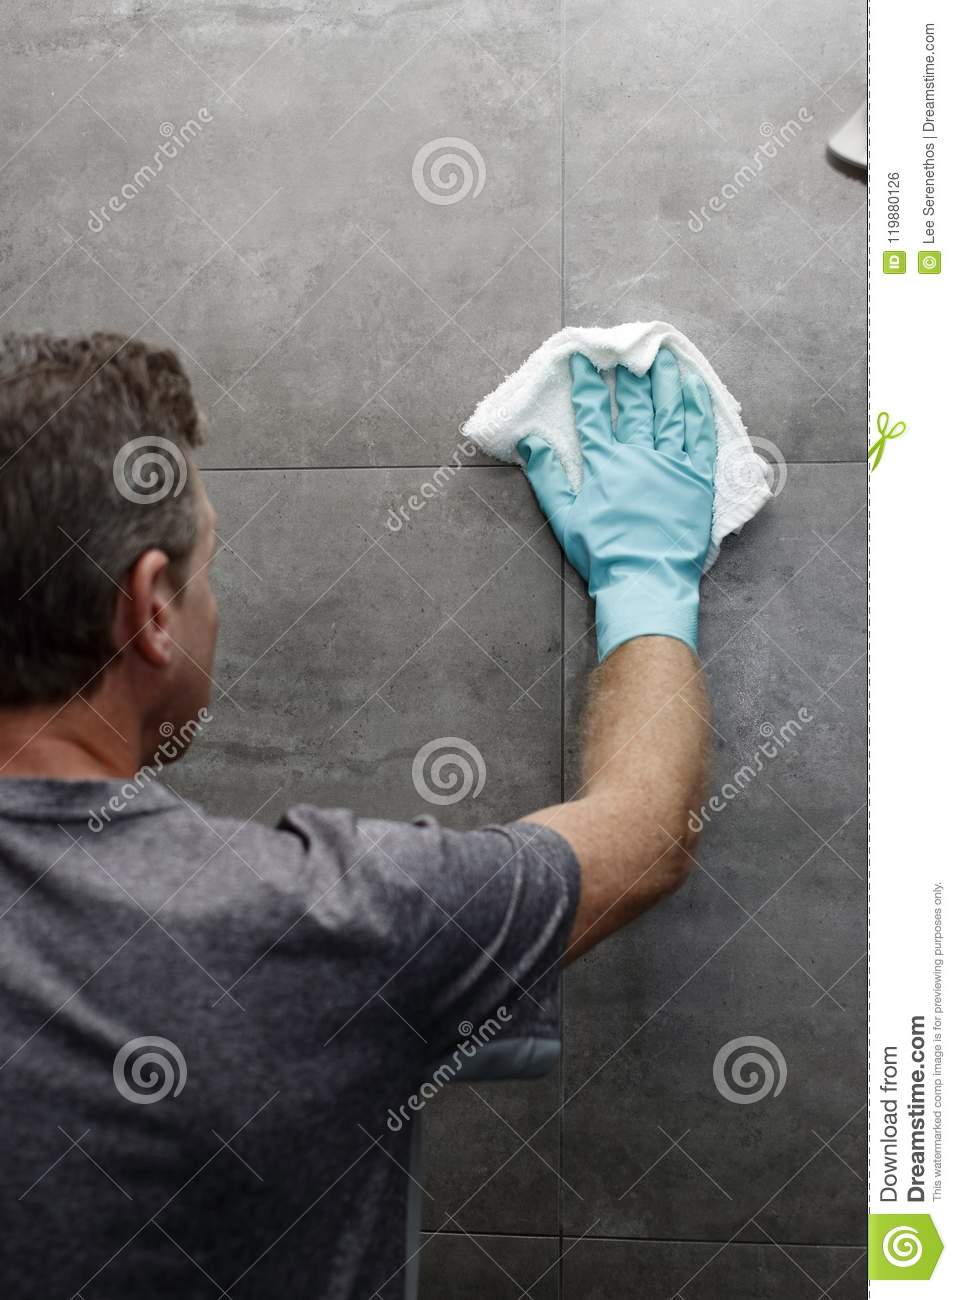 Man Washing Shower Wall with a Rag While Wearing a Green Protect